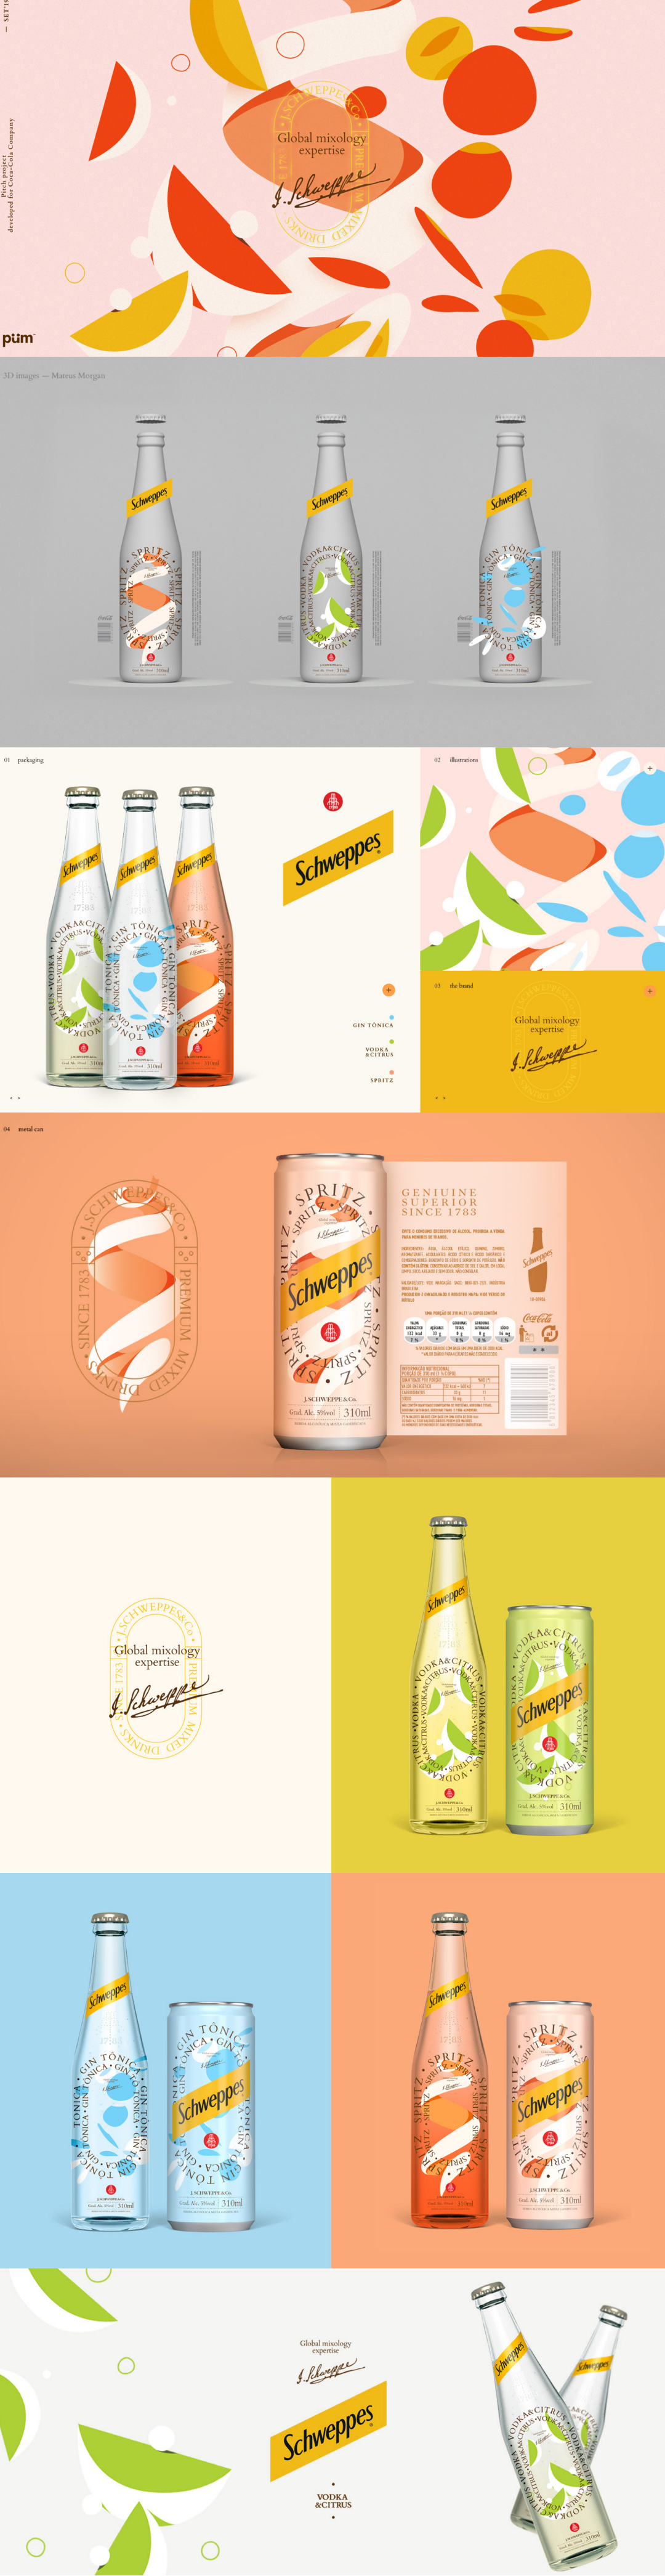 Packaging,Graphic Design